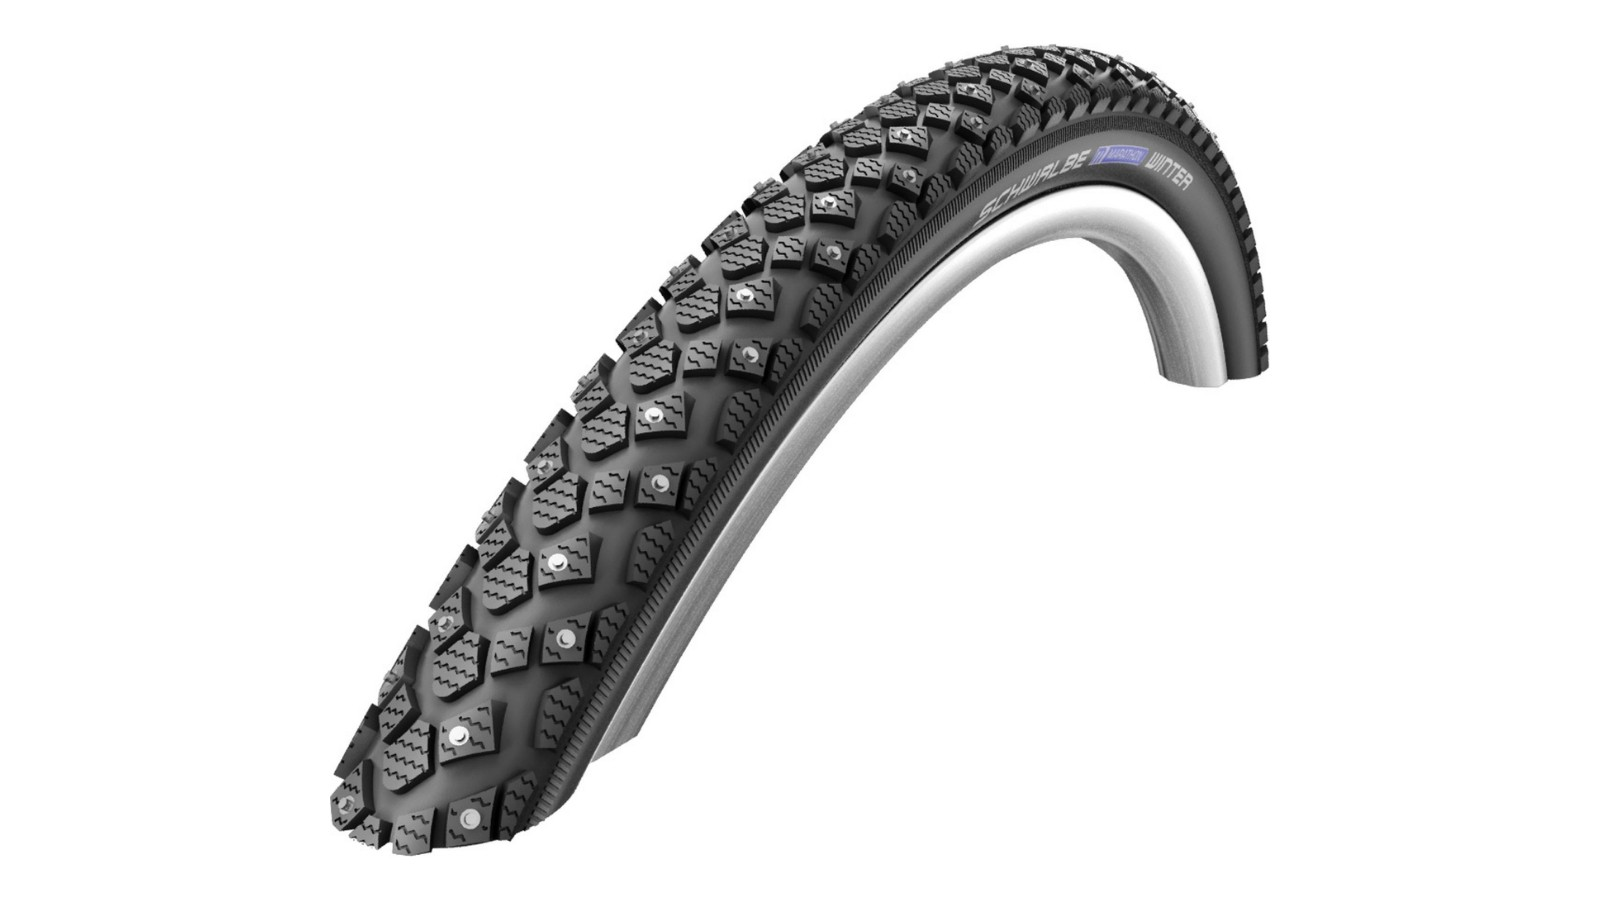 Grab a pair of studded Schwalbe Winter tyres for the price of one